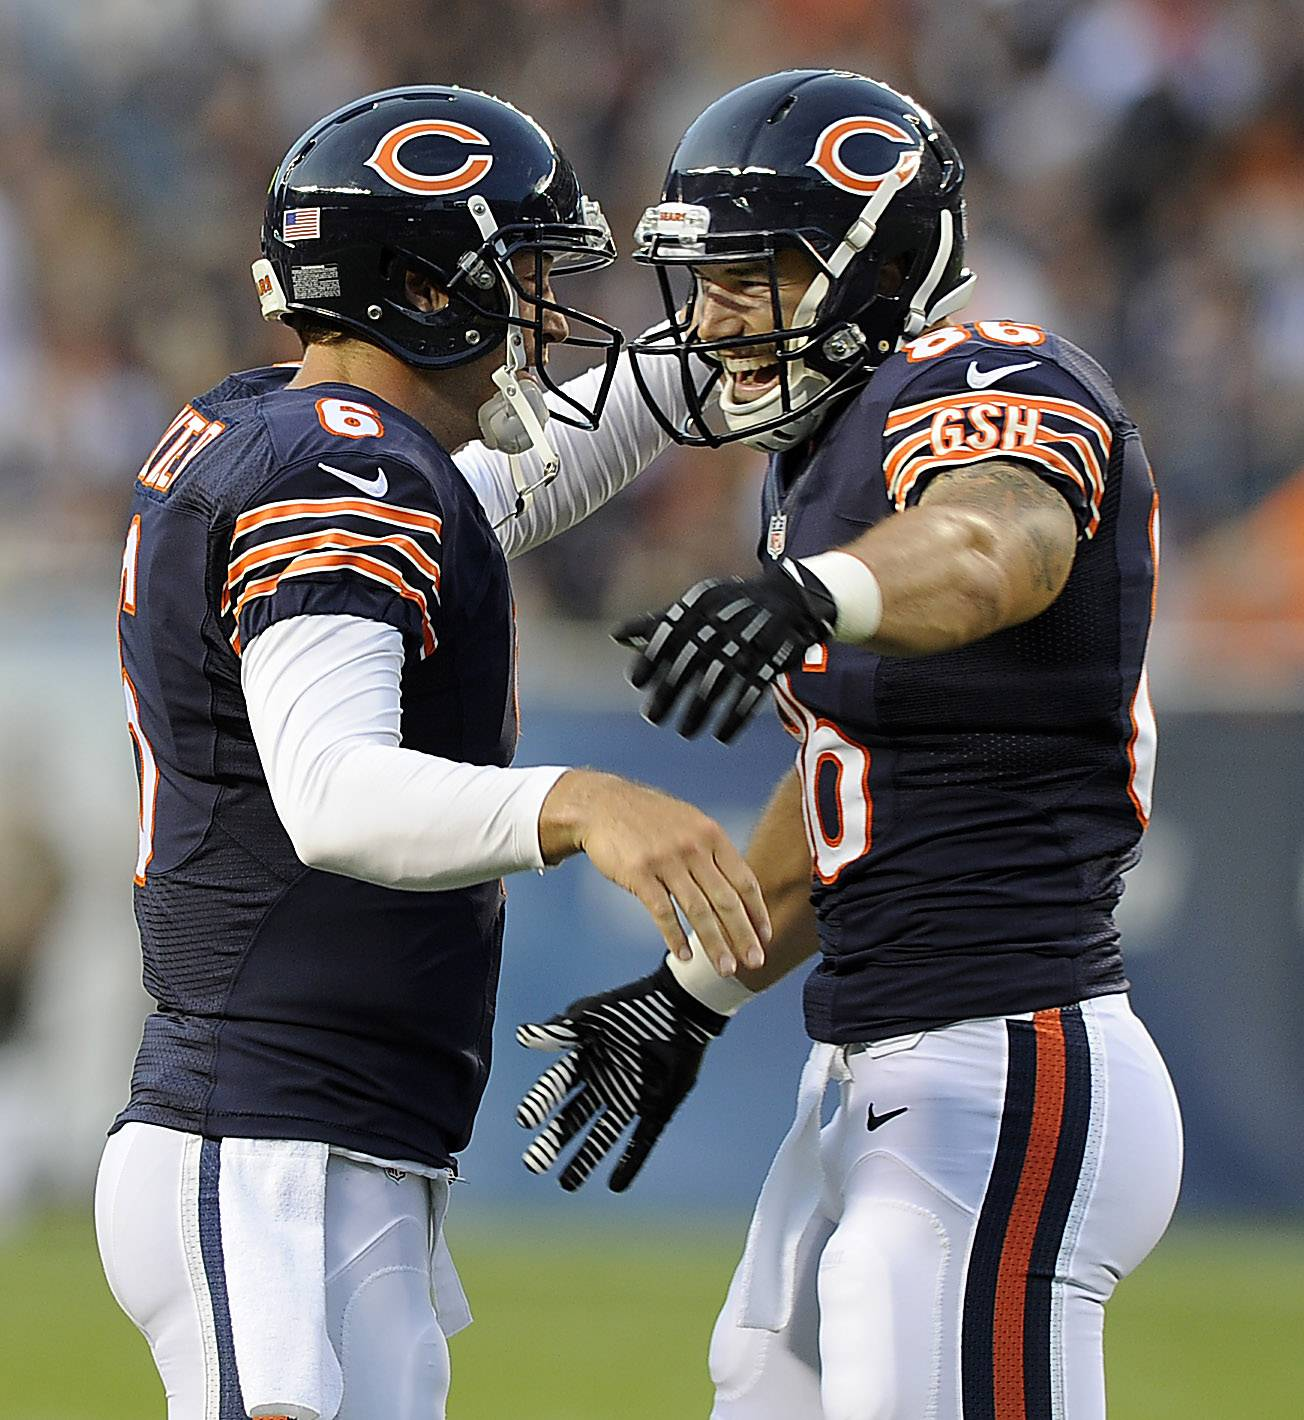 Chicago Bears Jay Cutler comes together with Zach Miller after his touchdown from Cutler's pass.